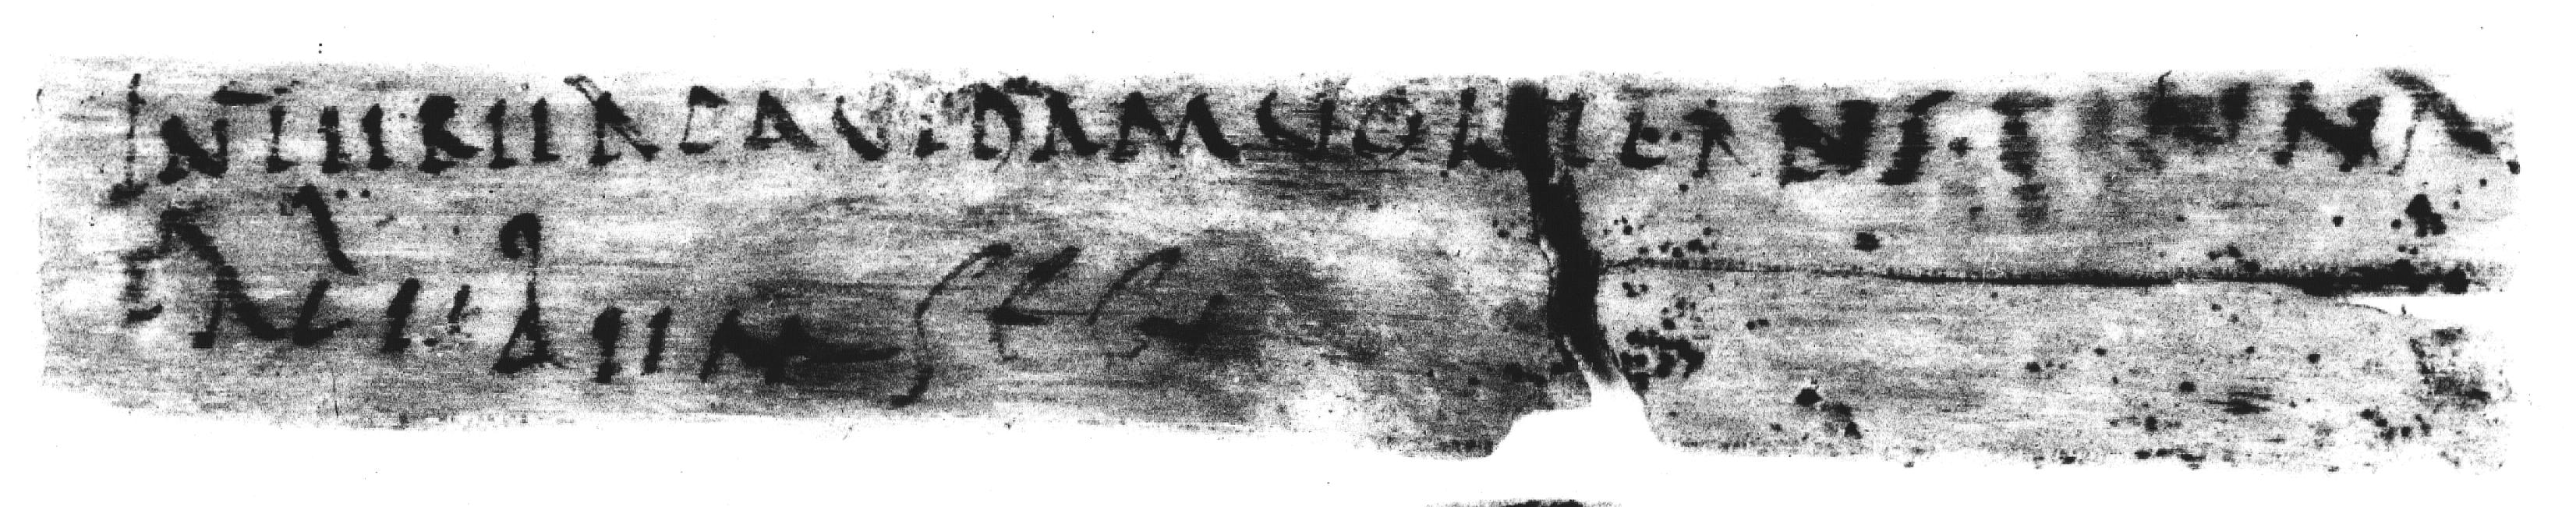 Figure 4. Writing exercise tablet from Virgil's Aeneid